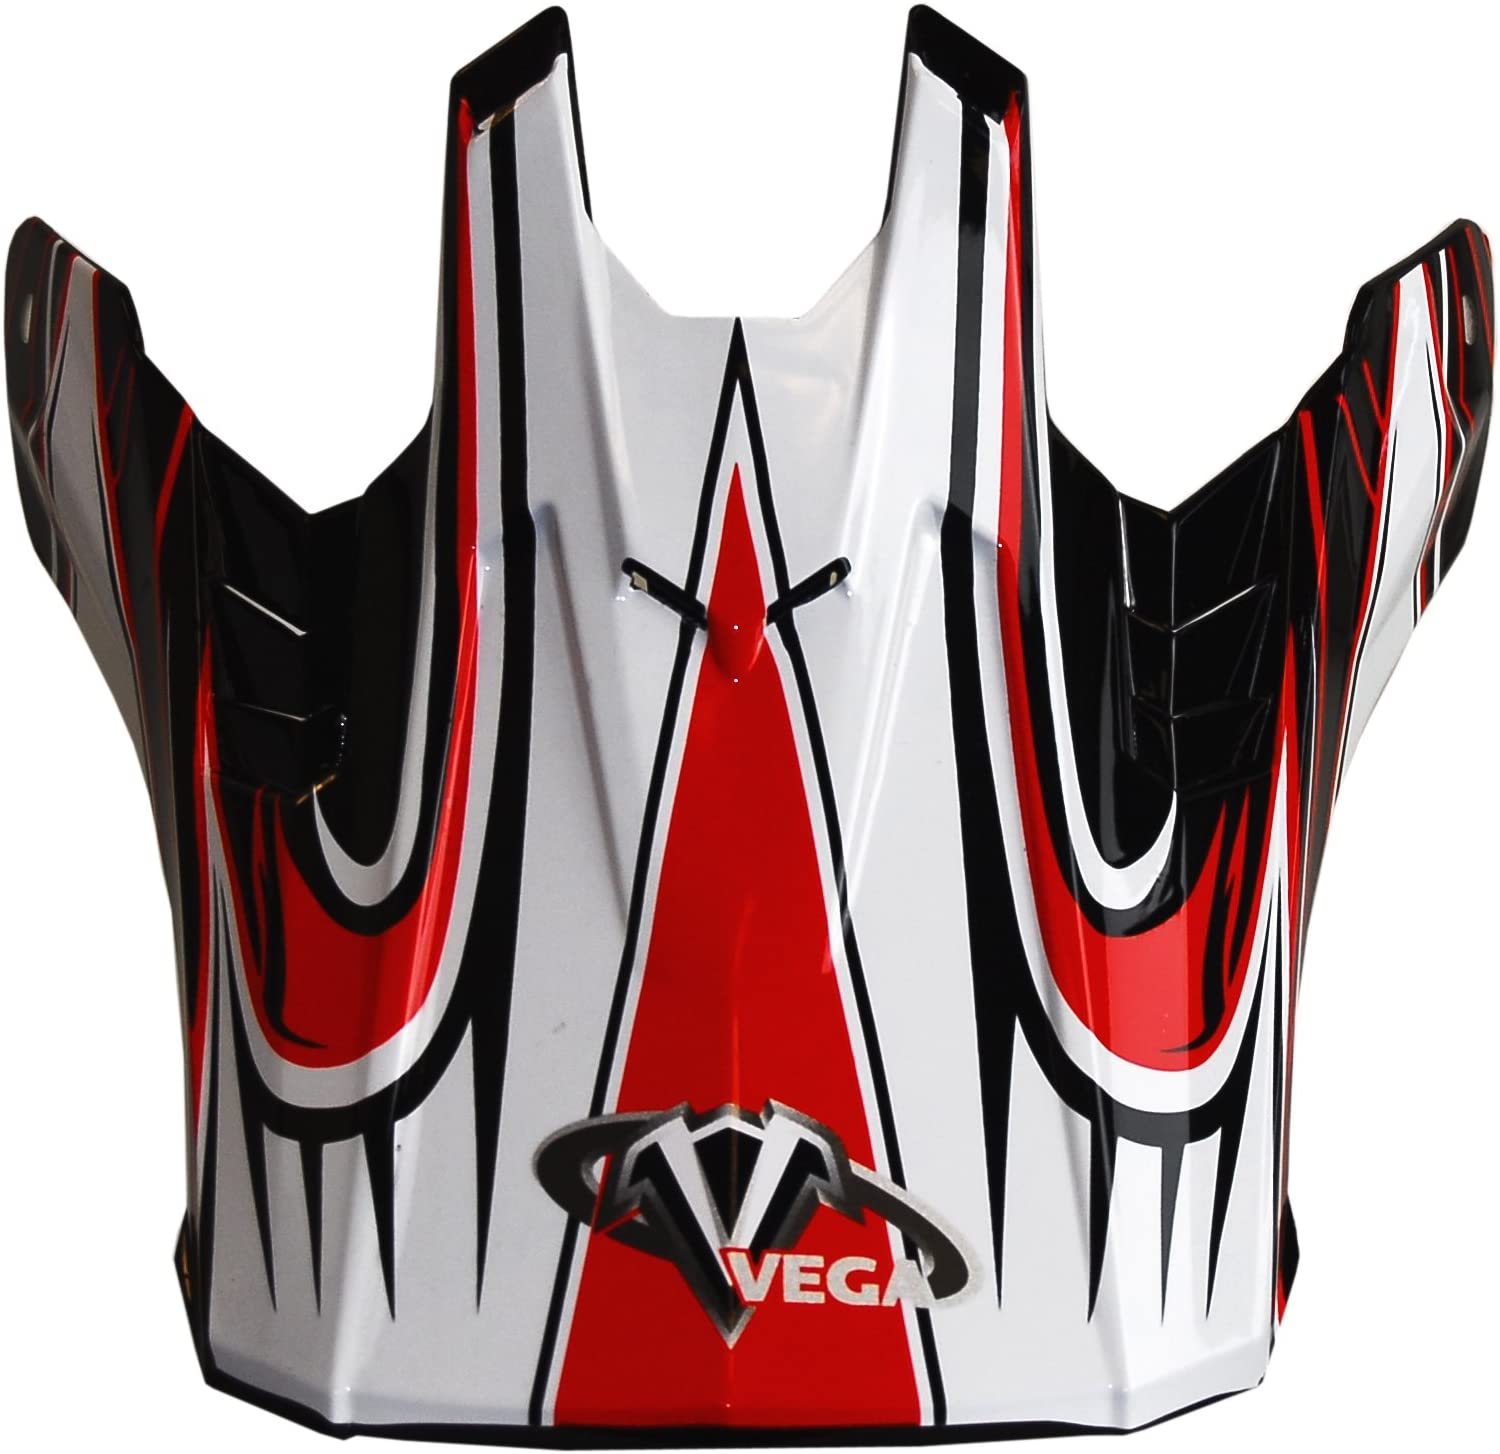 Vega NBX-Pro Off-Road Helmet Visor with  Scorch Graphic Yellow, Size Adult